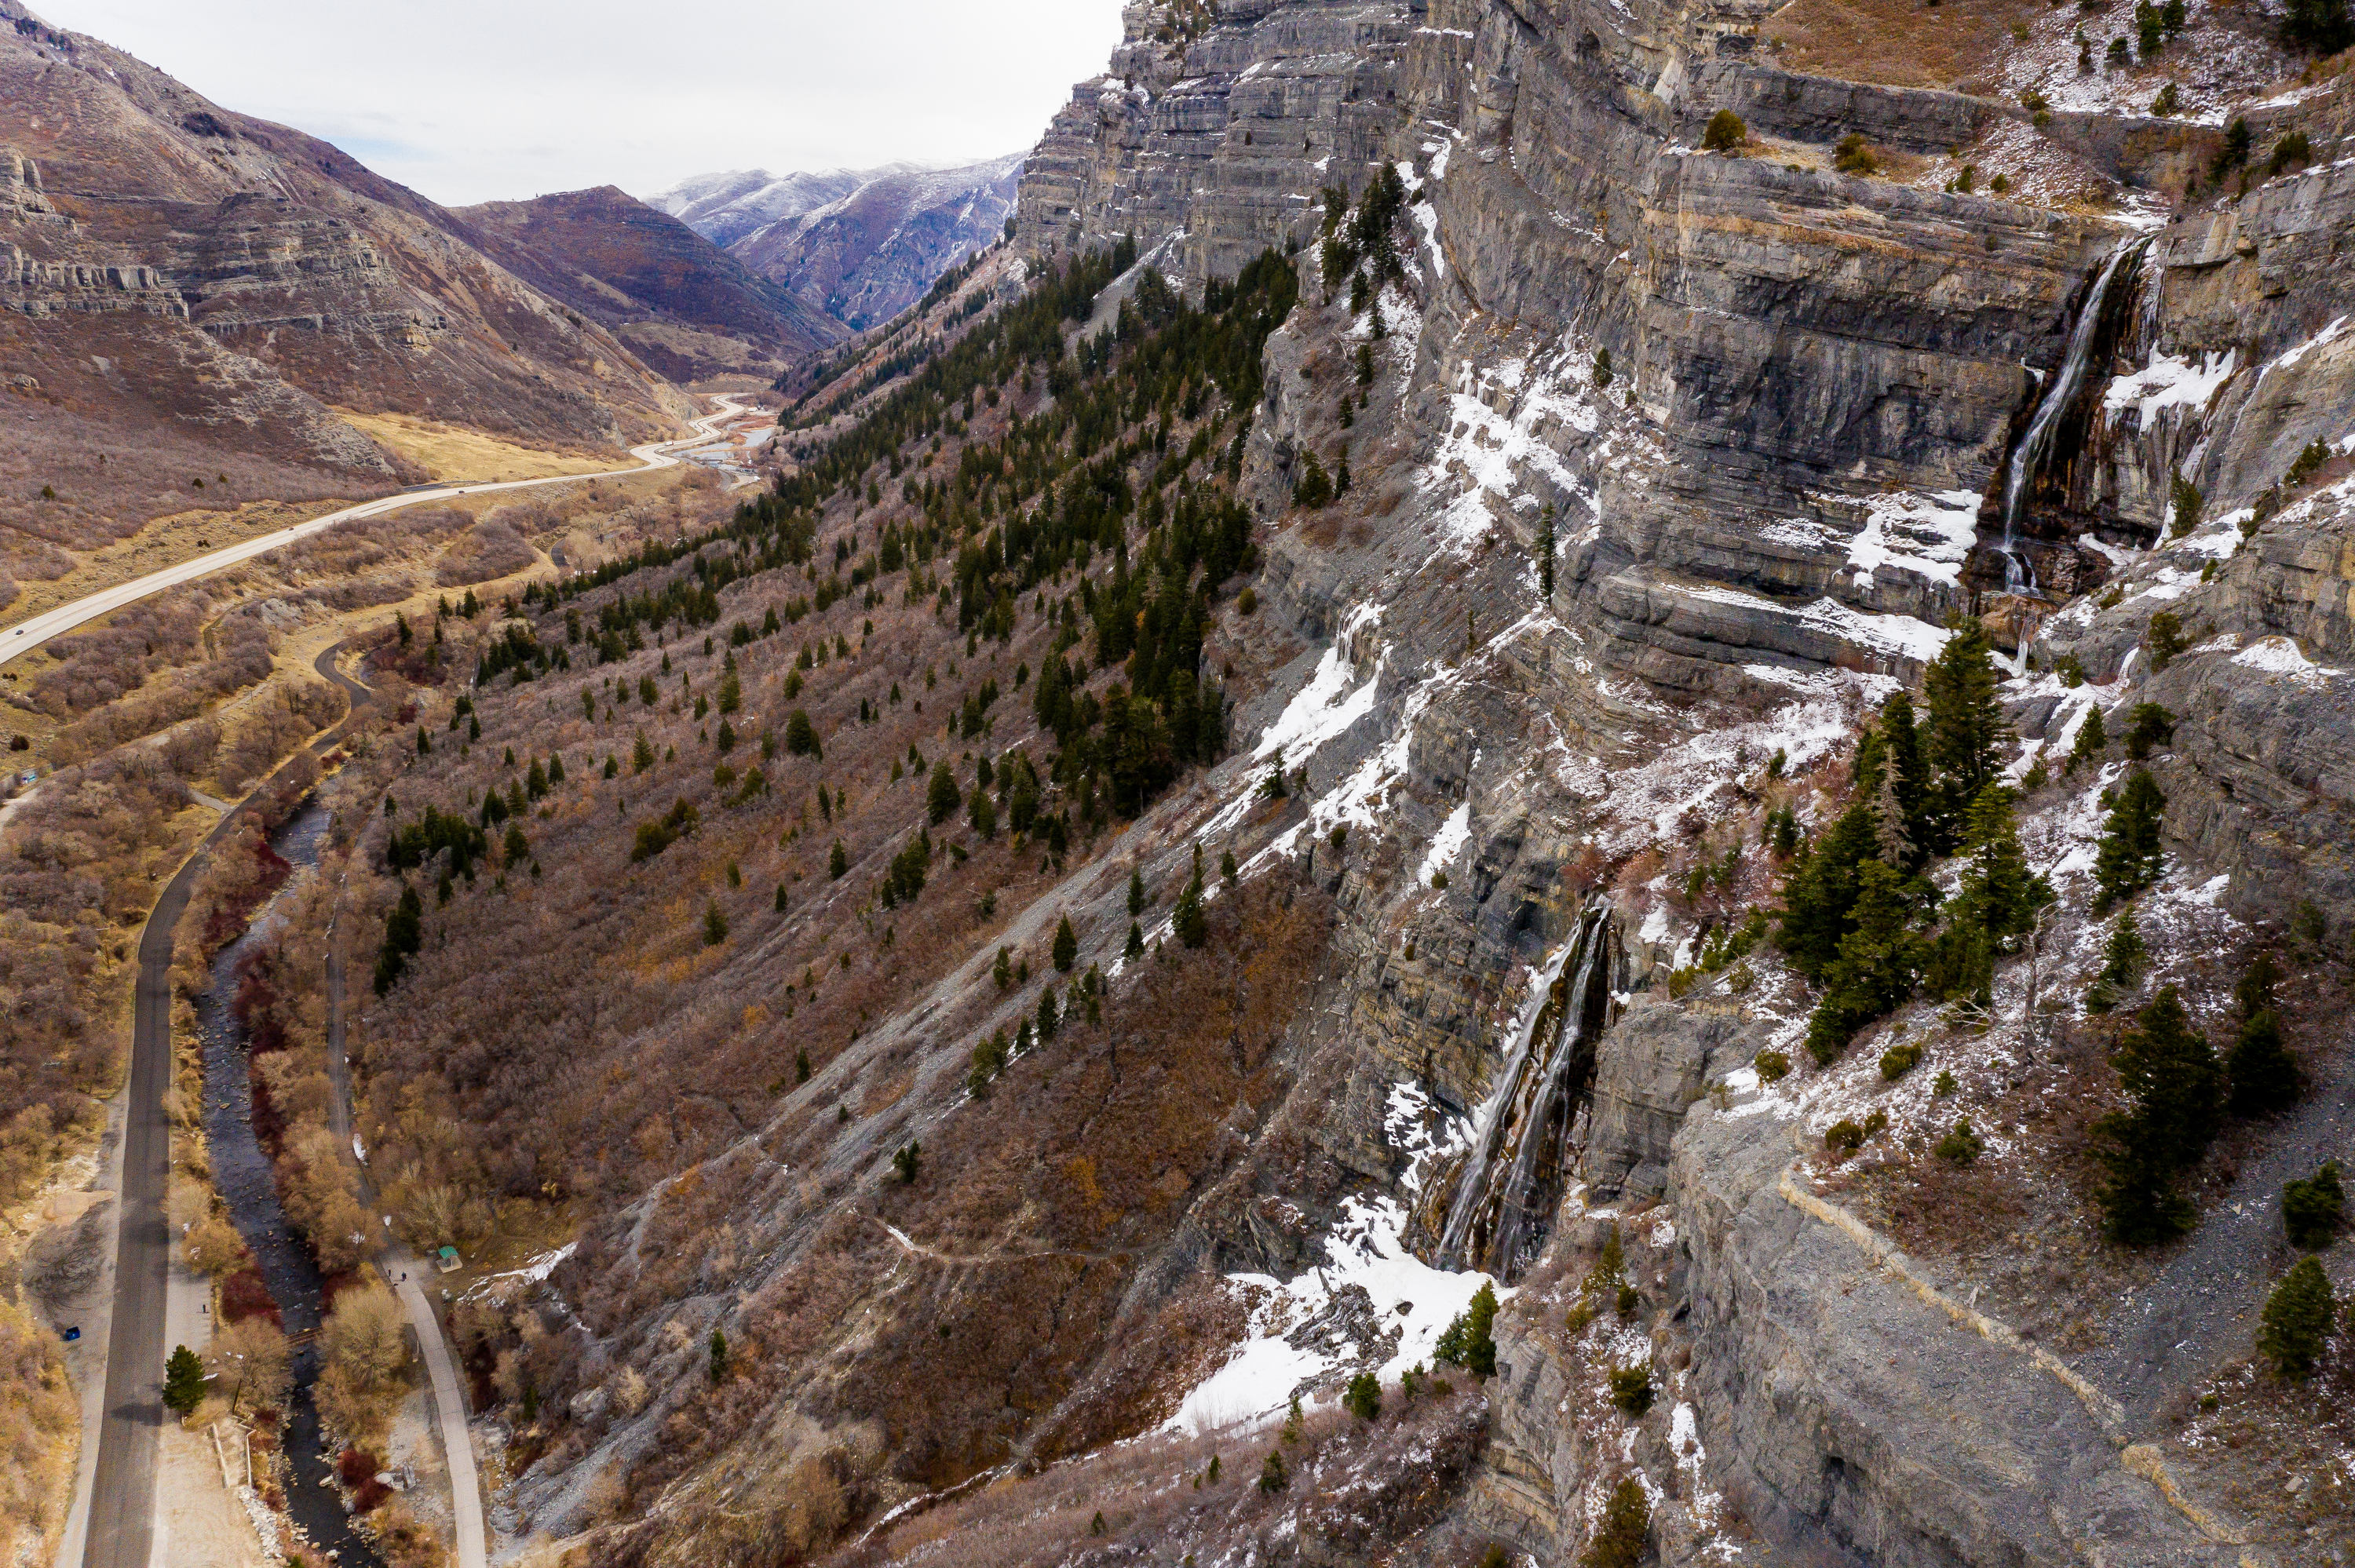 Bridal Veil Falls in Provo Canyon is pictured on Friday, March 12, 2021.